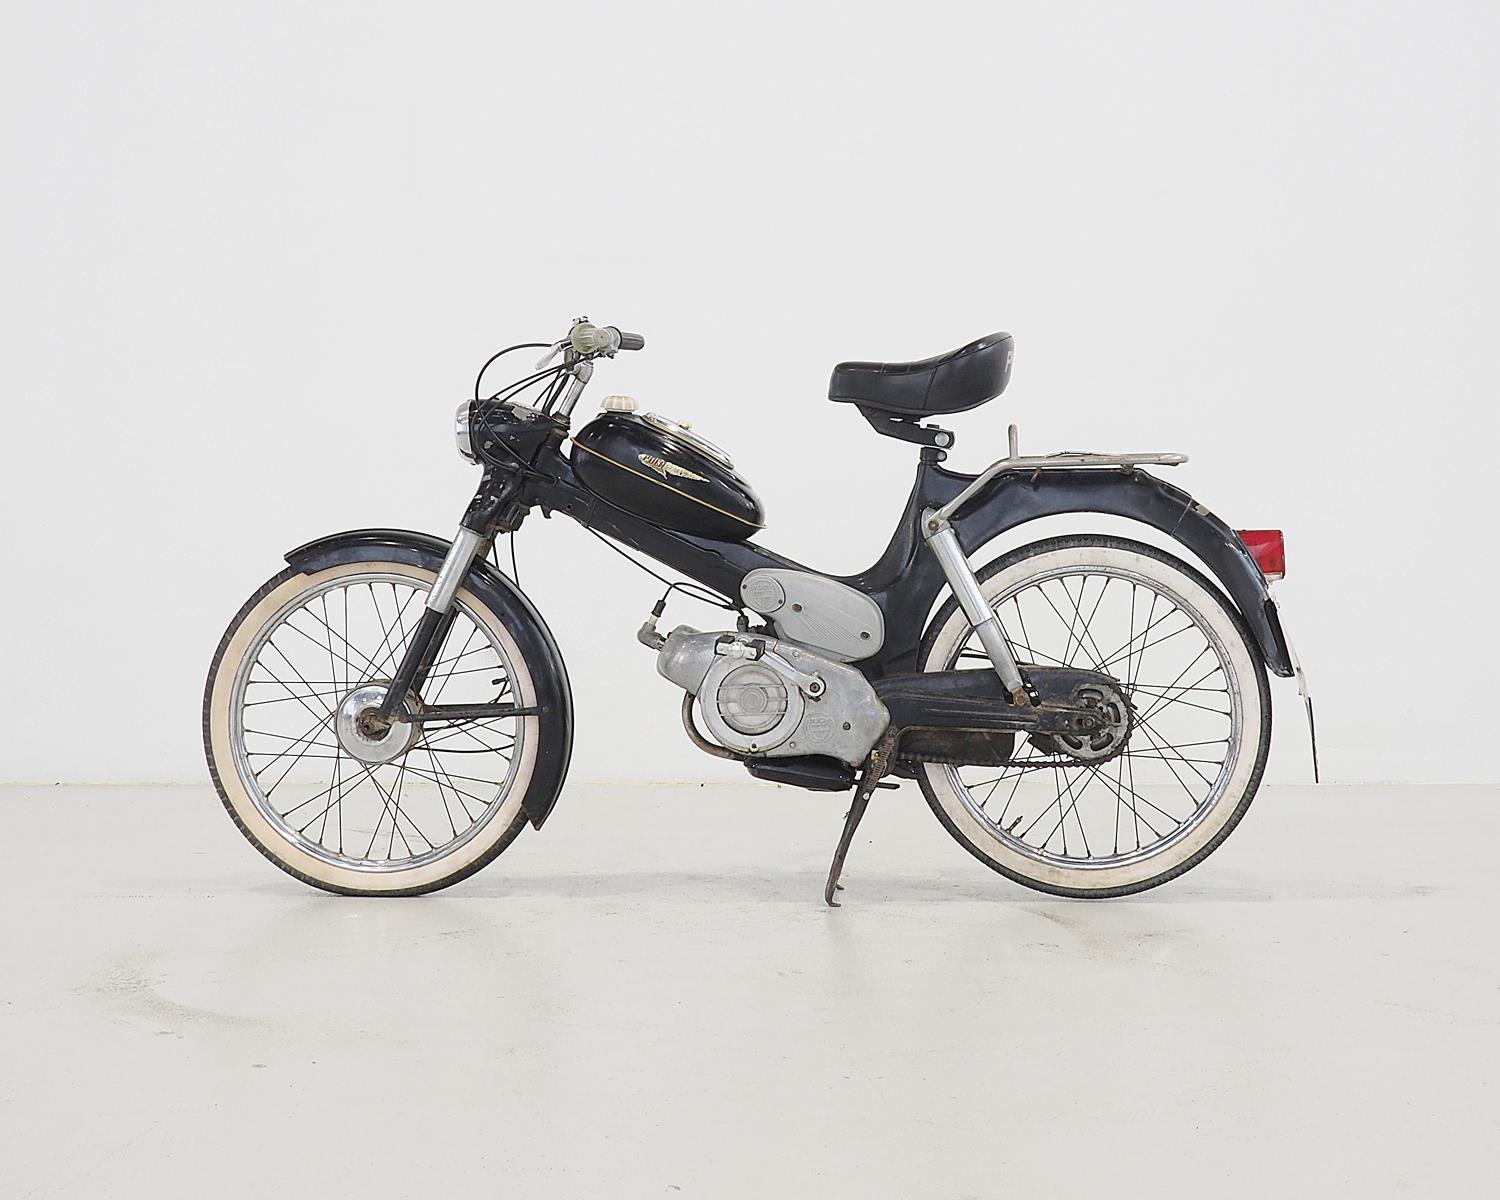 1977 Puch MV 50 (ohne Limit) - Classic Cars 2019/06/15